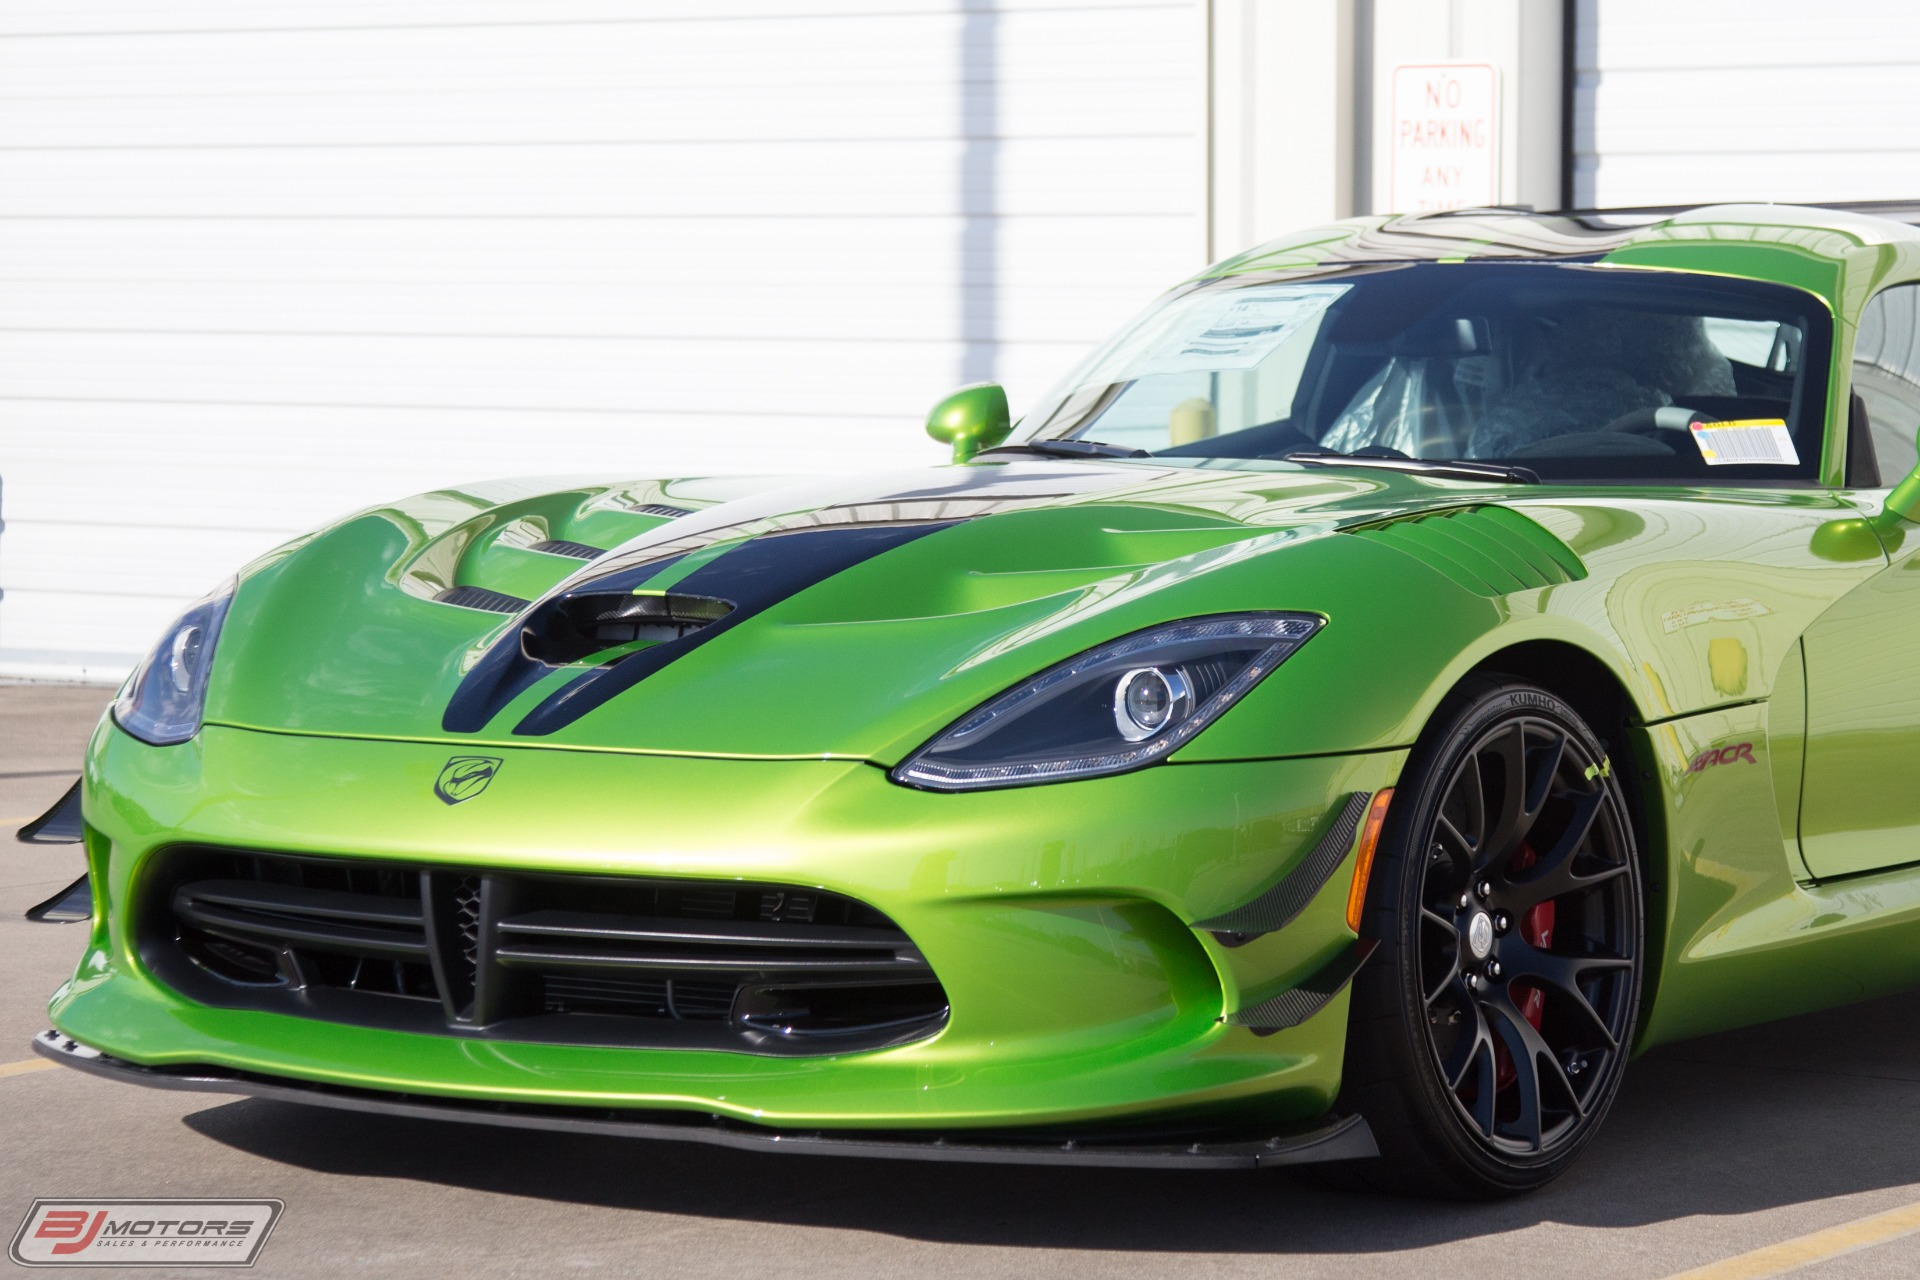 Used-2017-Dodge-Viper-ACR-Extreme-Snakeskin-Green--25